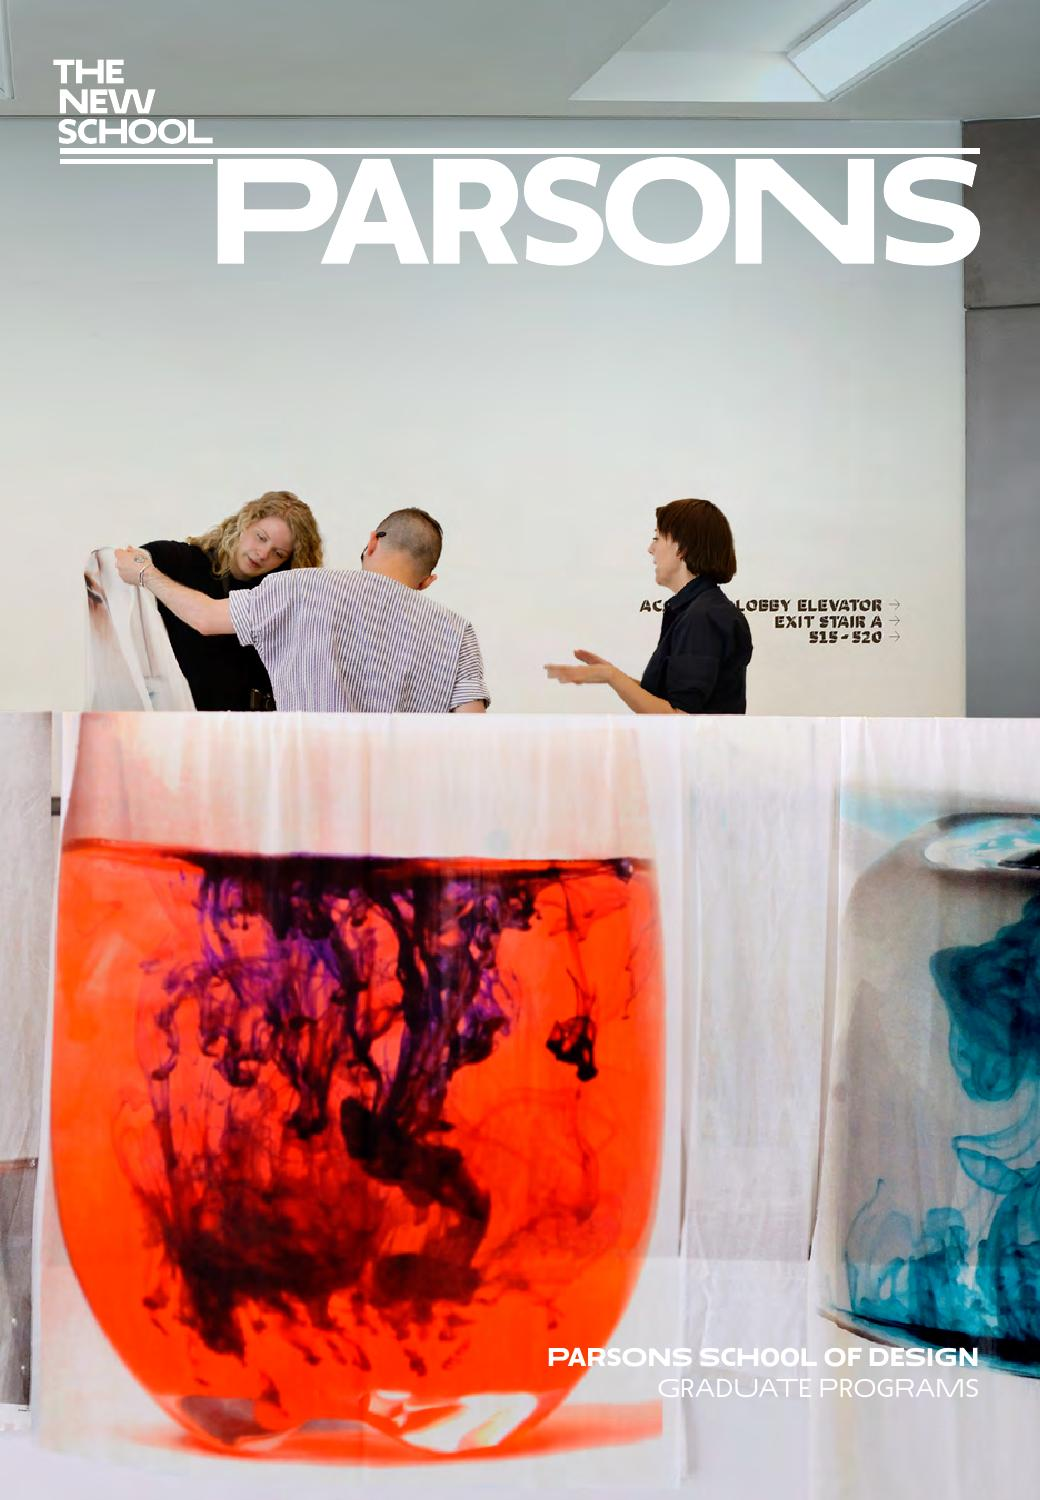 Parsons School of Design - Wikipedia. Parsons School of Design, known colloquially as Parsons, is a private art and design college institution was renamed The New School, the school undergone a rebranding in which it was renamed Parsons The New School for Design. techclux.gq